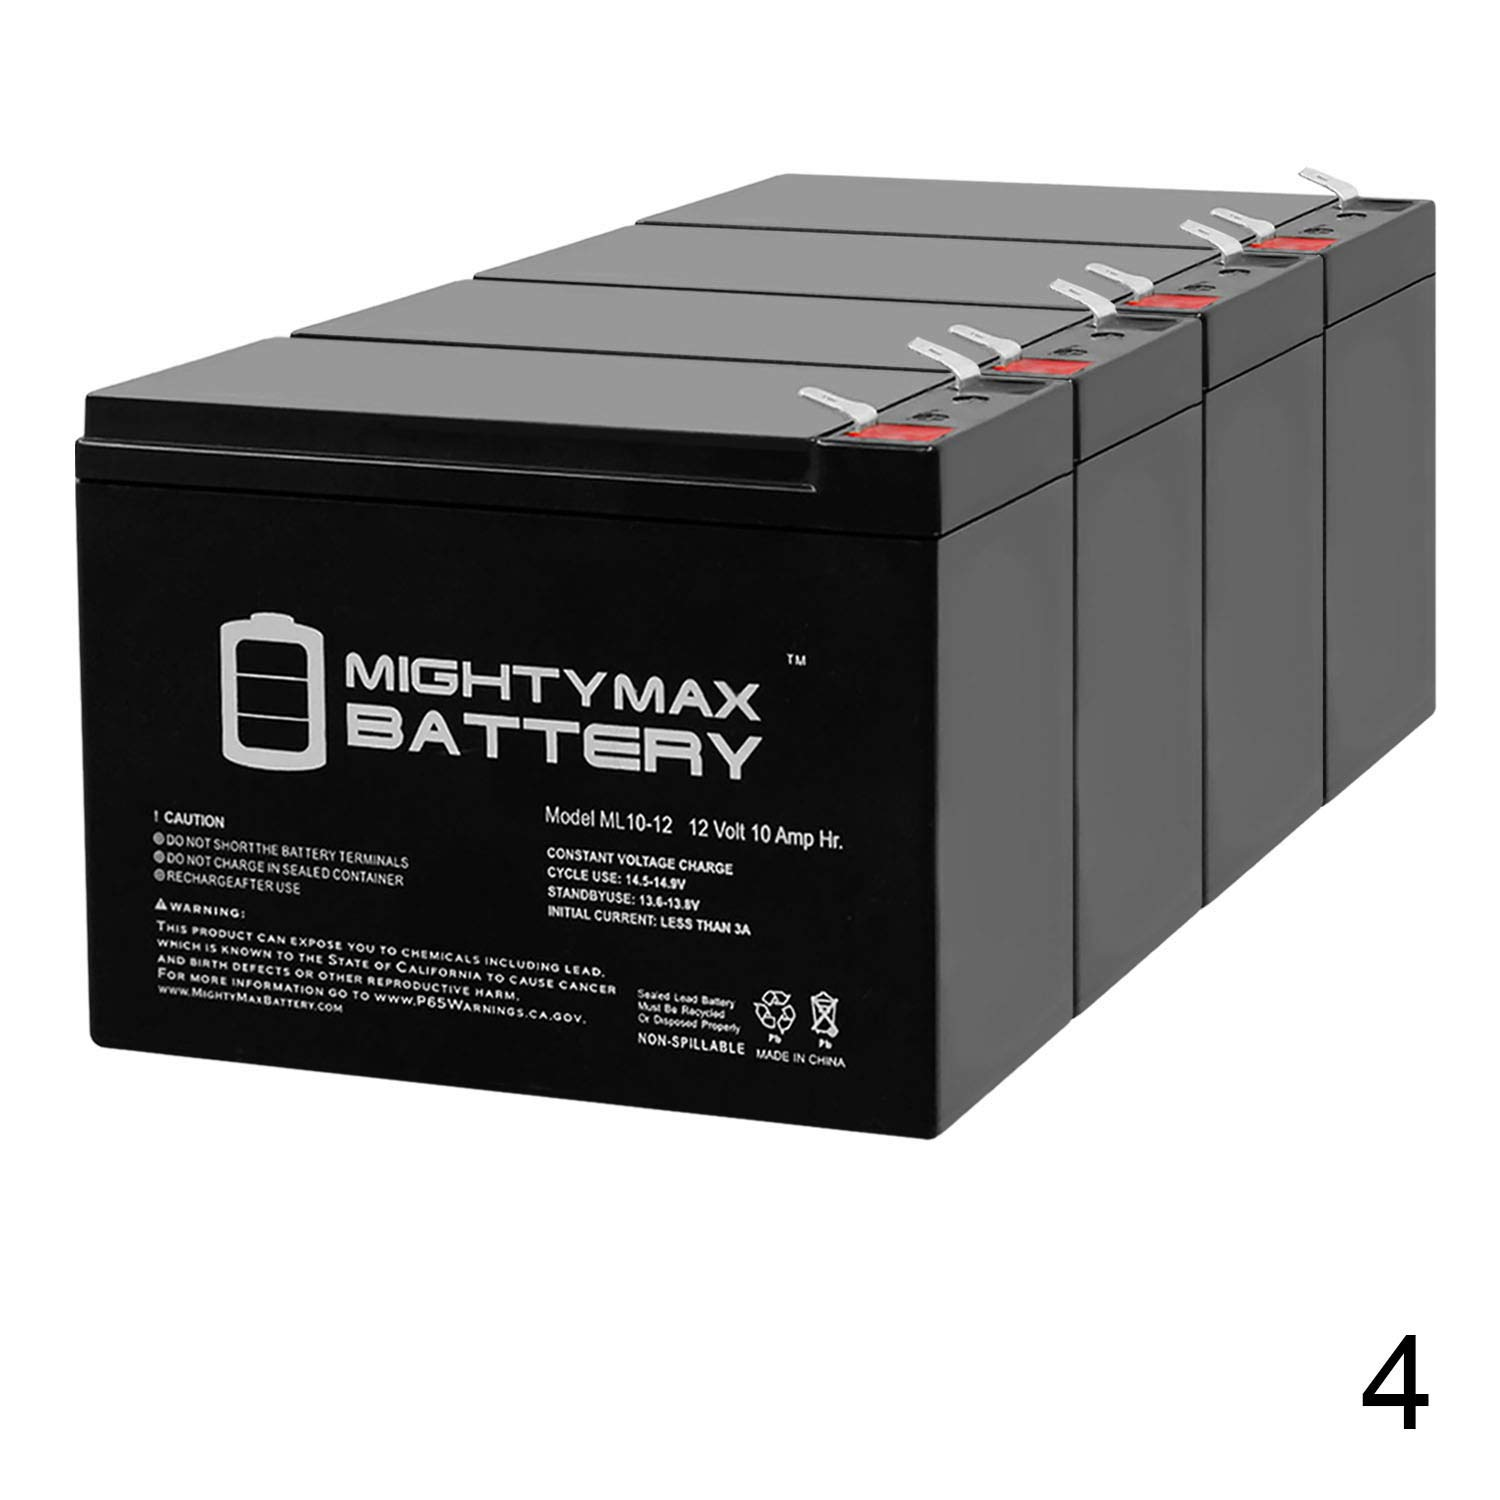 Mighty Max Battery ML10-12 - 12 Volt 10 AH SLA Battery (4 Pack)